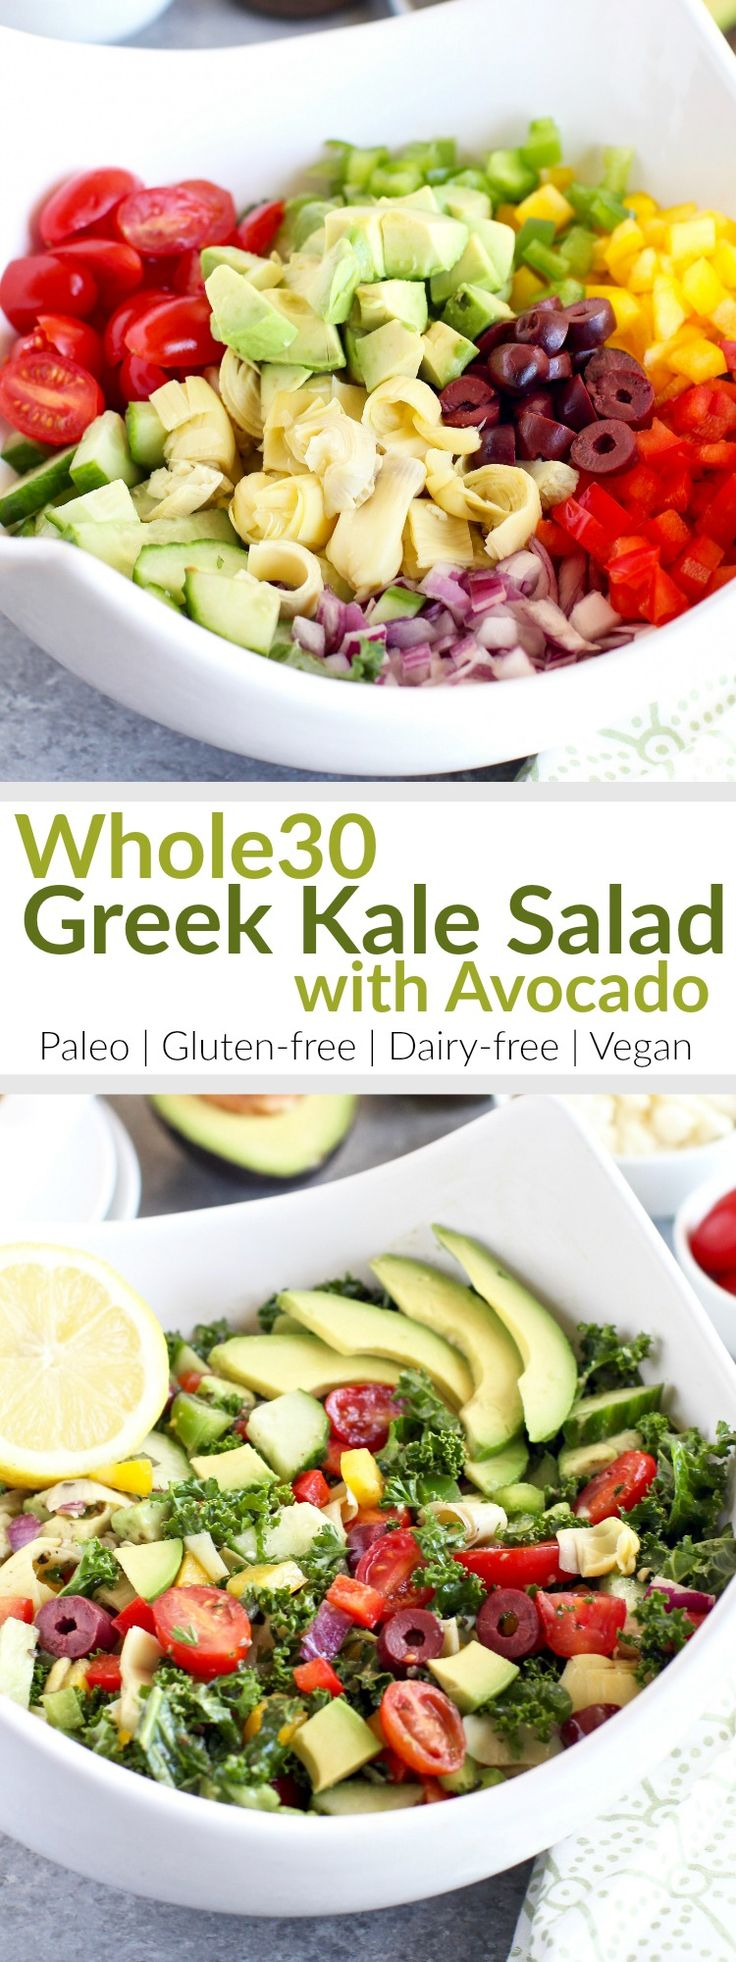 Greek Kale Salad with Avocado is a hearty and colorful salad that's packed to max with flavor, healthy fats, and nutrient-dense veggies! The perfect salad for upcoming potlucks and summer grill-outs. | The Real Food Dietitians | http://therealfoodrds.com/greek-kale-salad-avocado/